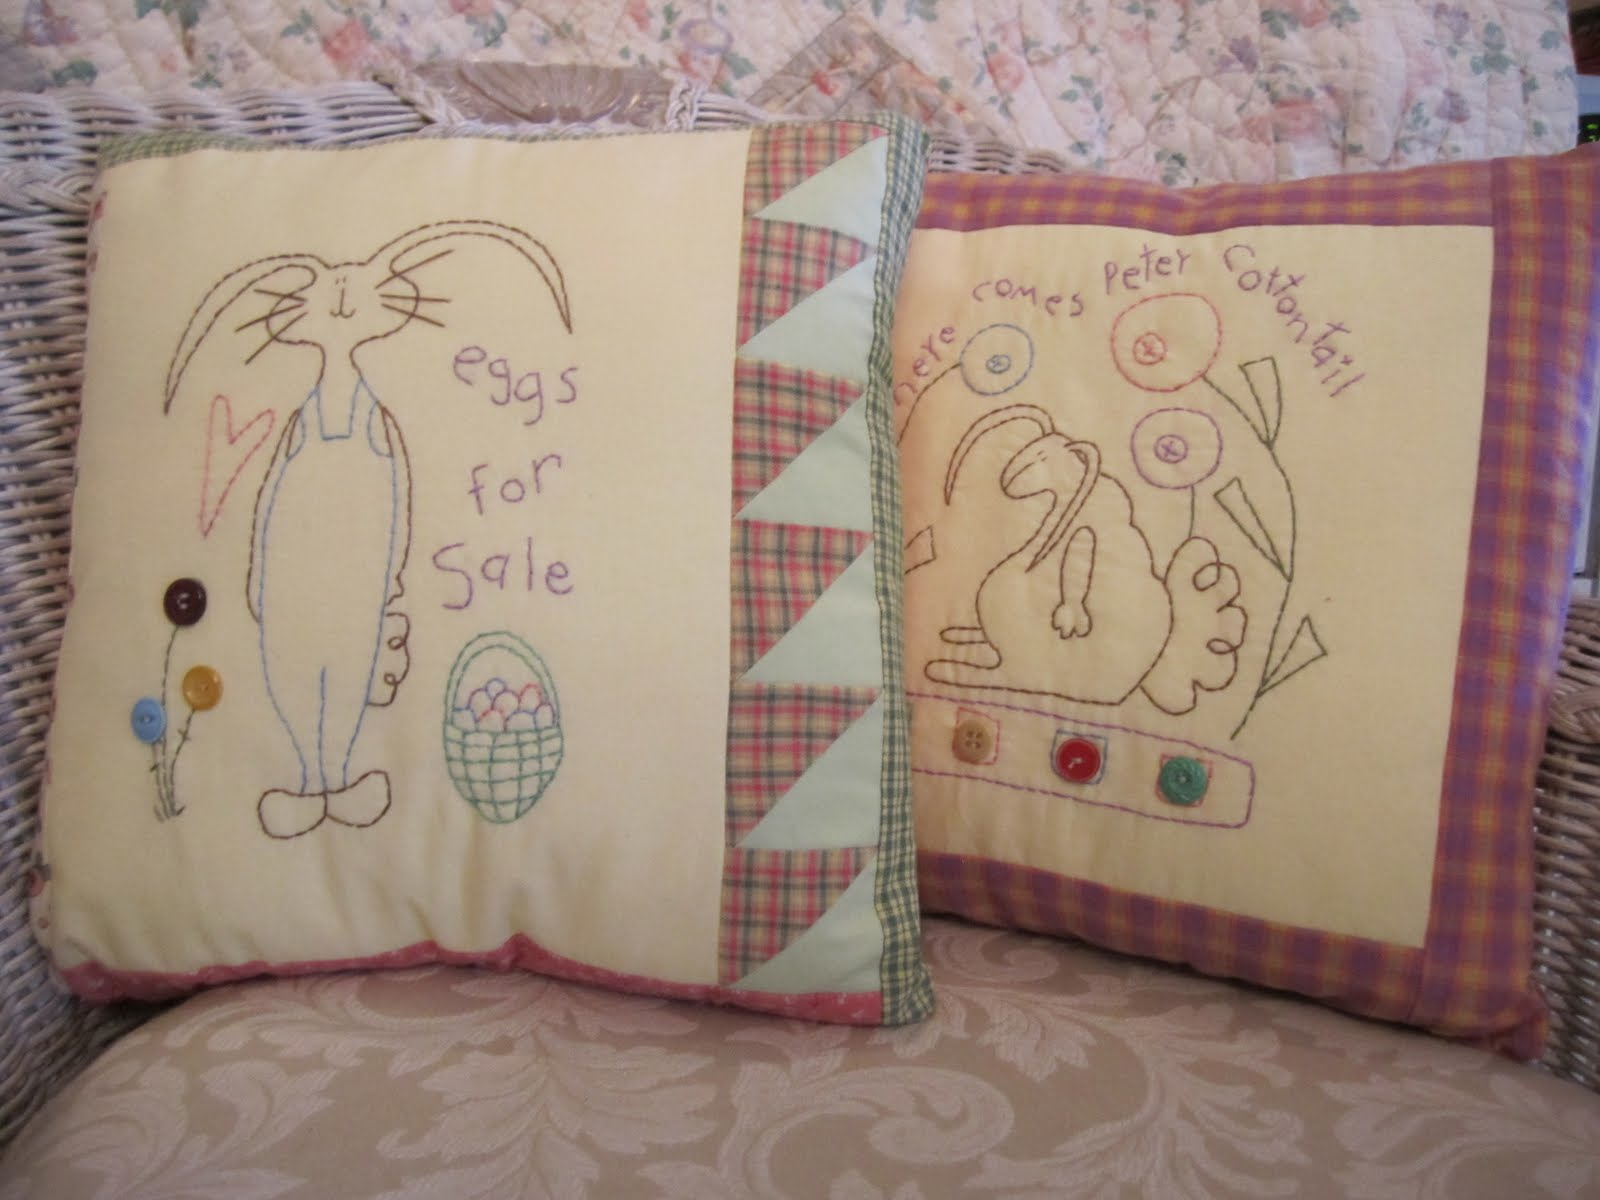 Decorative Pillows For Easter : 30 Stylish And Adorable Handmade Decorative Easter Pillows ThemesCompany